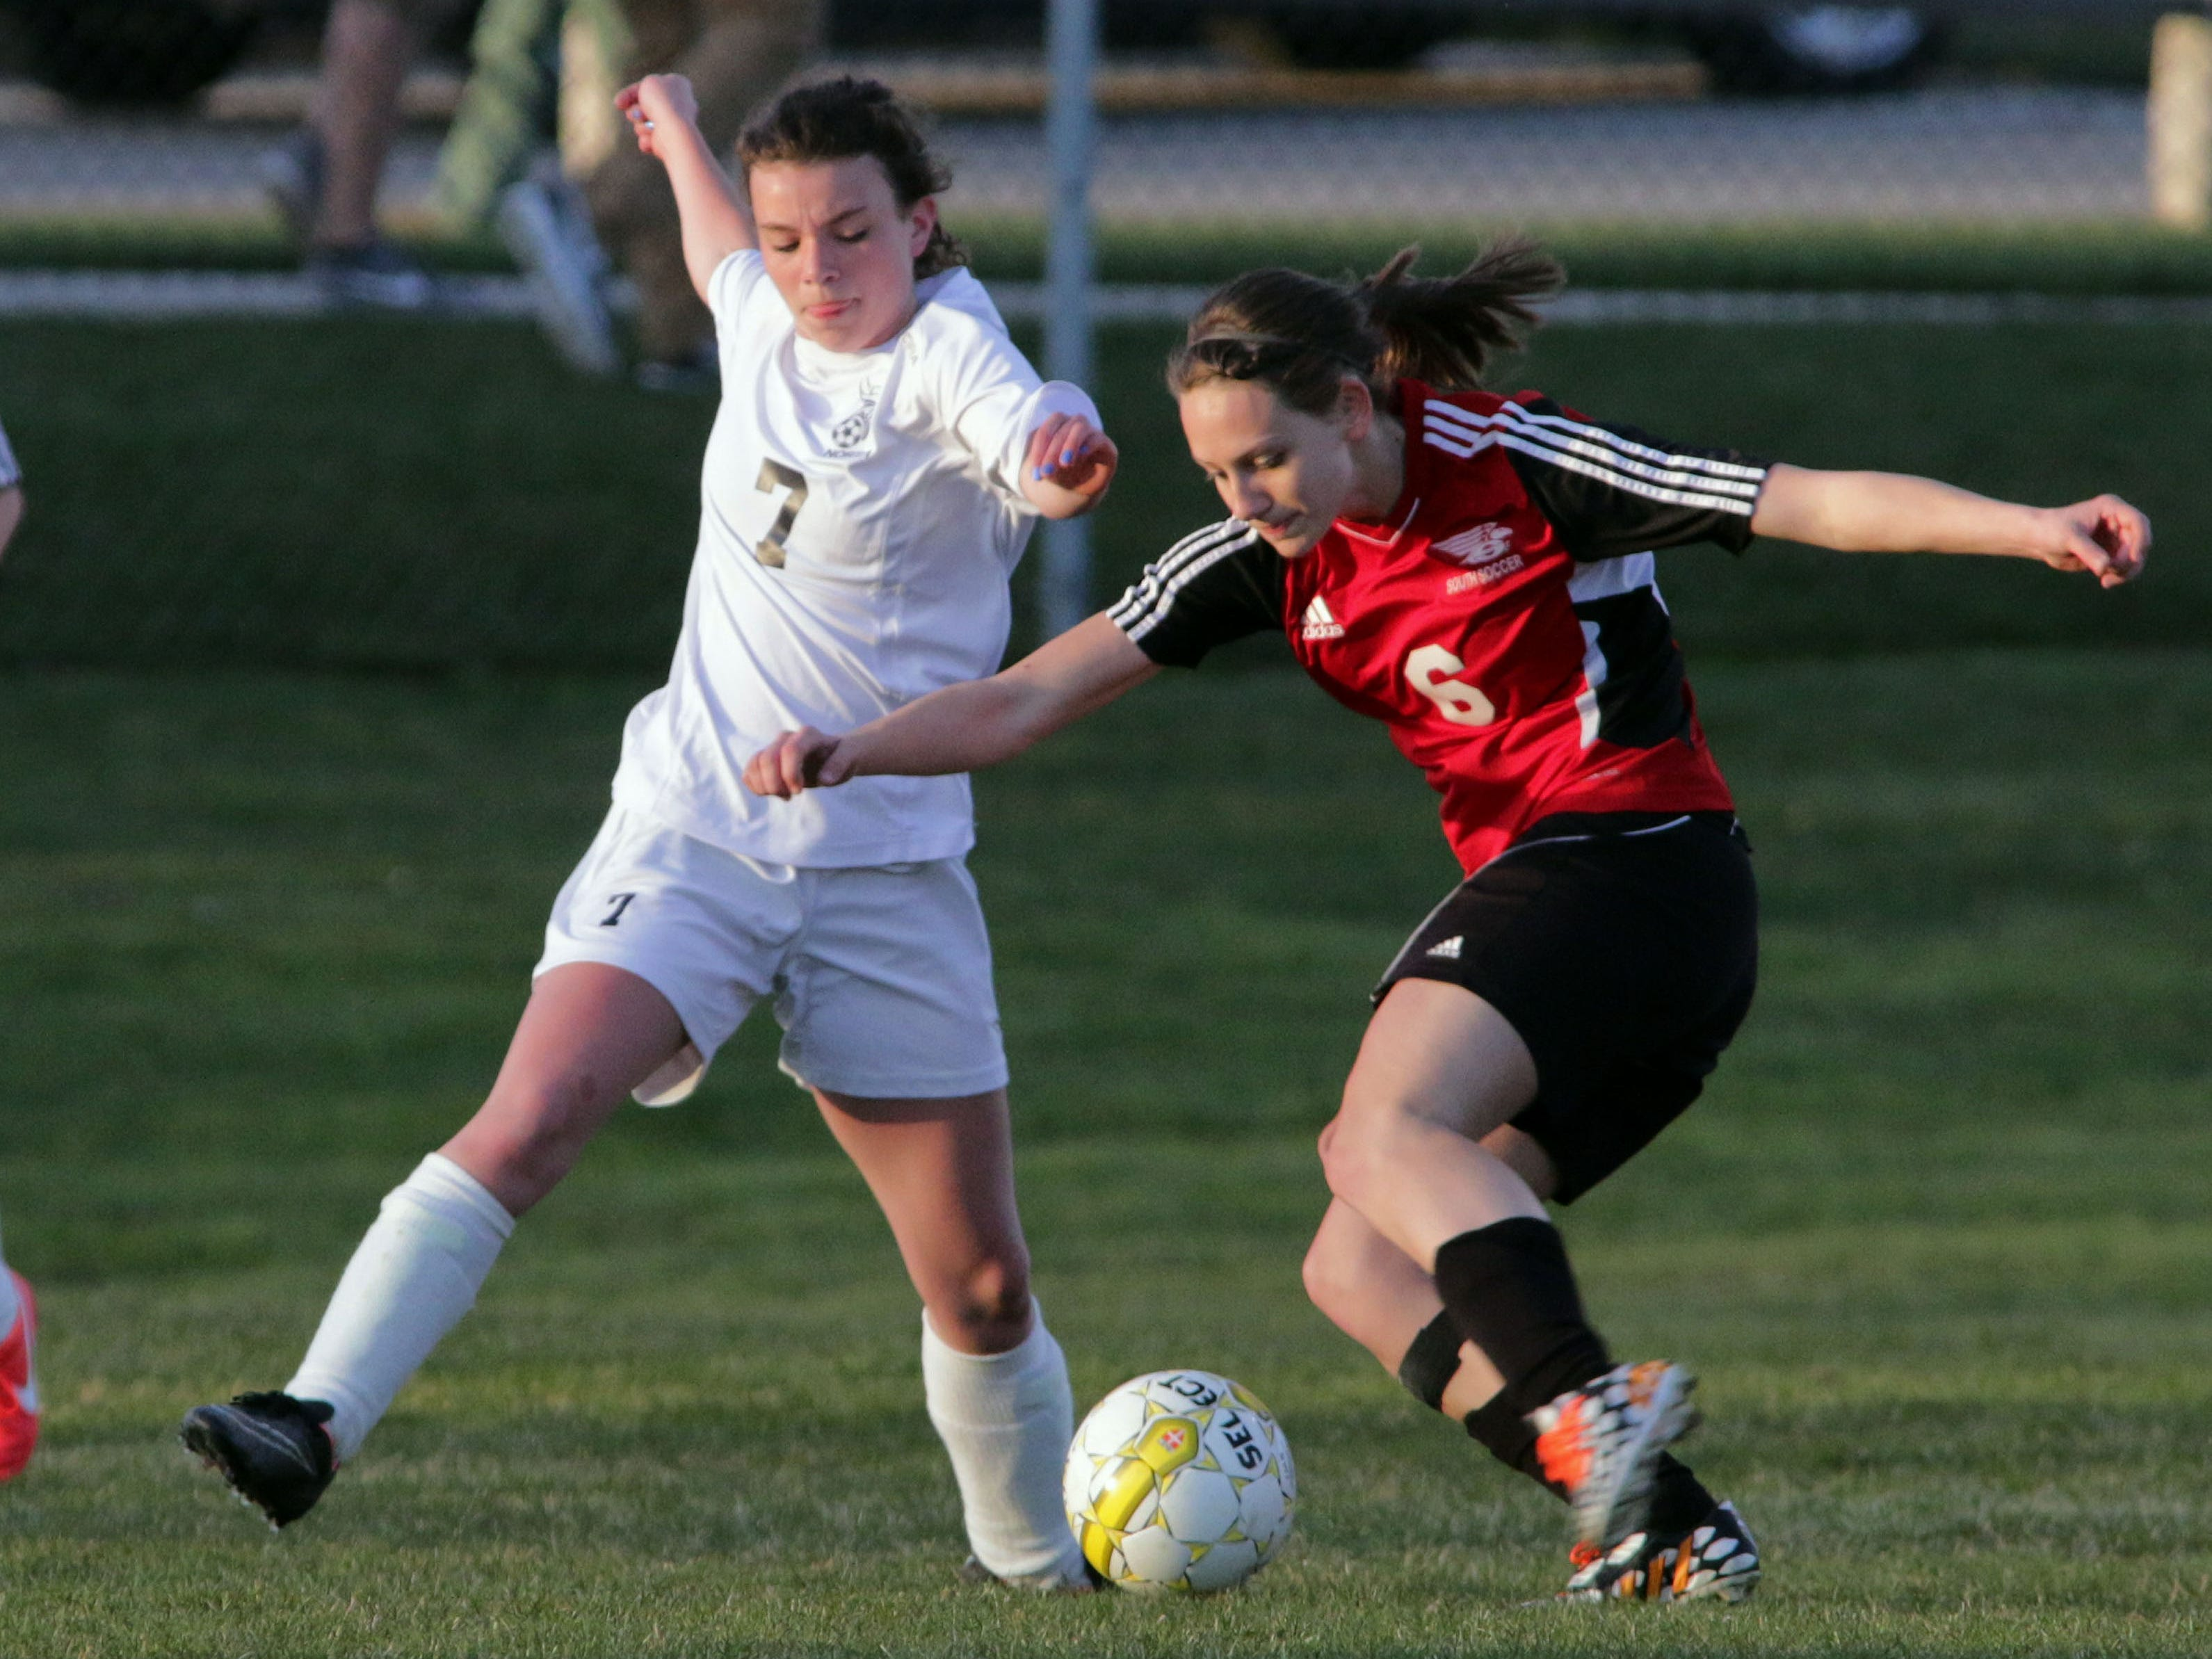 Sheboygan North's Mallory Veeser (7) and Sheboygan South's Baylee Rivas (6) battle for the ball Tuesday at the Horace Mann Soccer Complex.